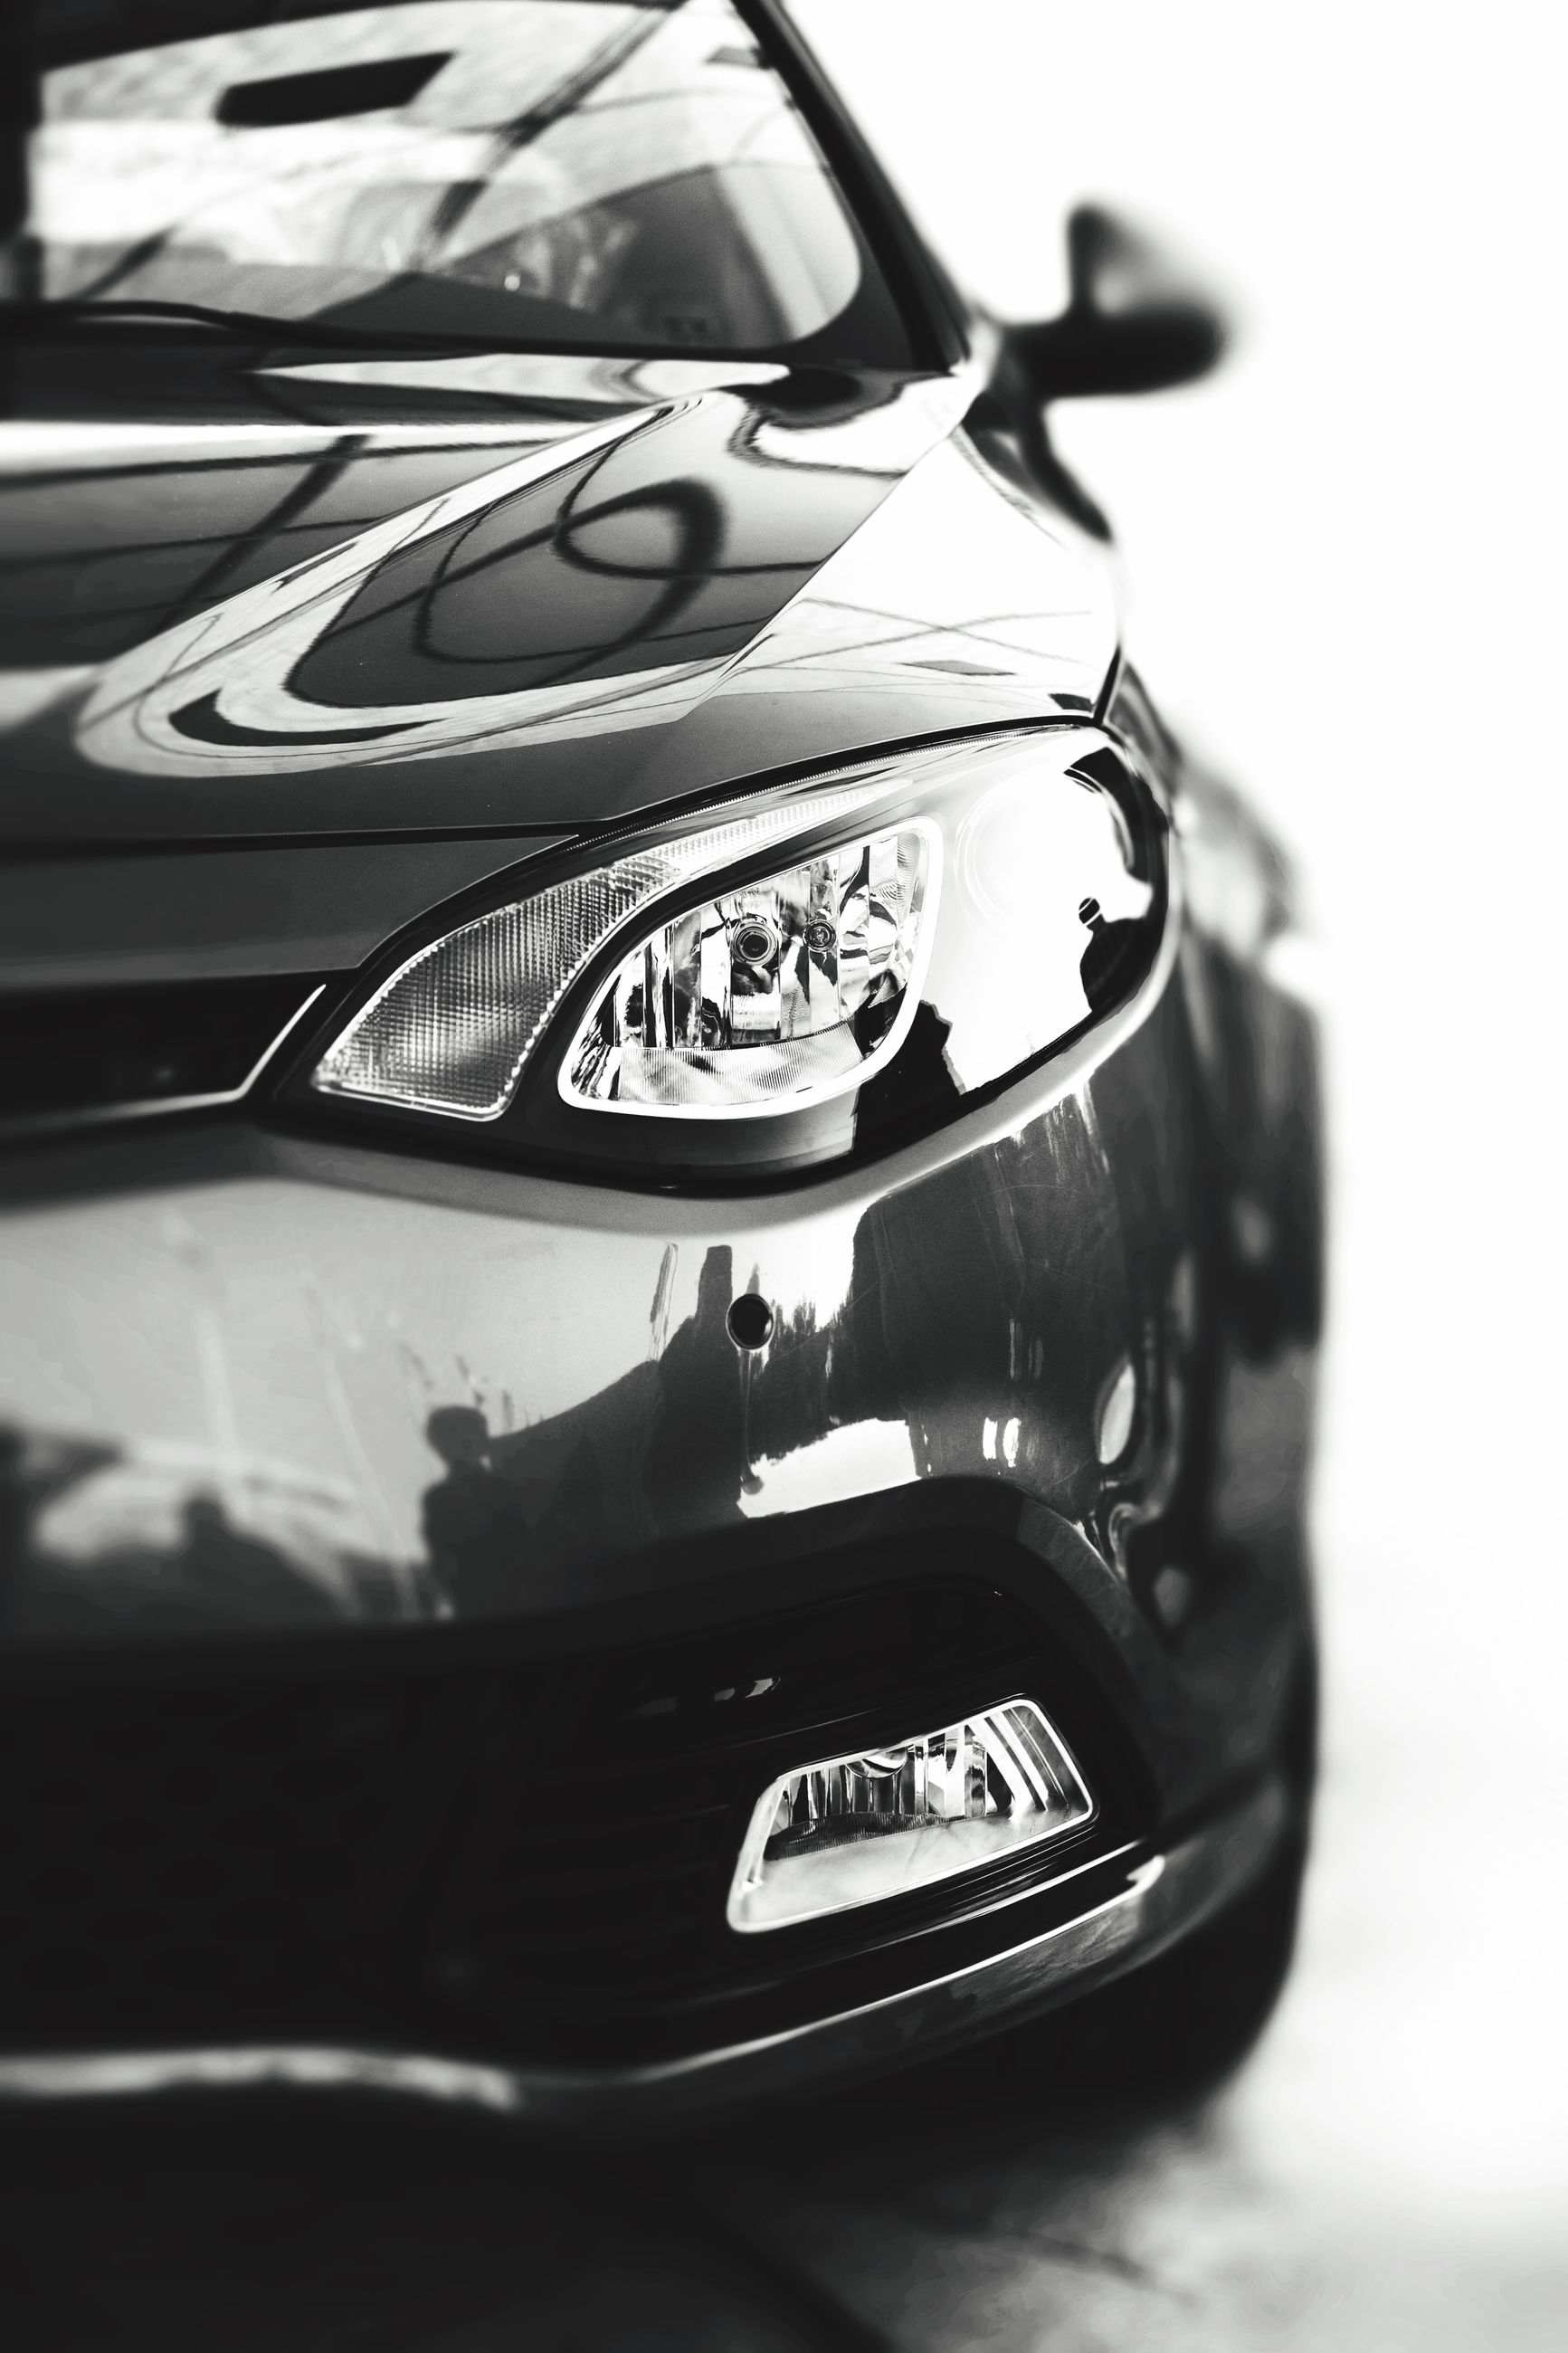 close-up, technology, music, indoors, arts culture and entertainment, photography themes, car, selective focus, transportation, musical instrument, land vehicle, retro styled, focus on foreground, mode of transport, old-fashioned, camera - photographic equipment, part of, black color, single object, still life